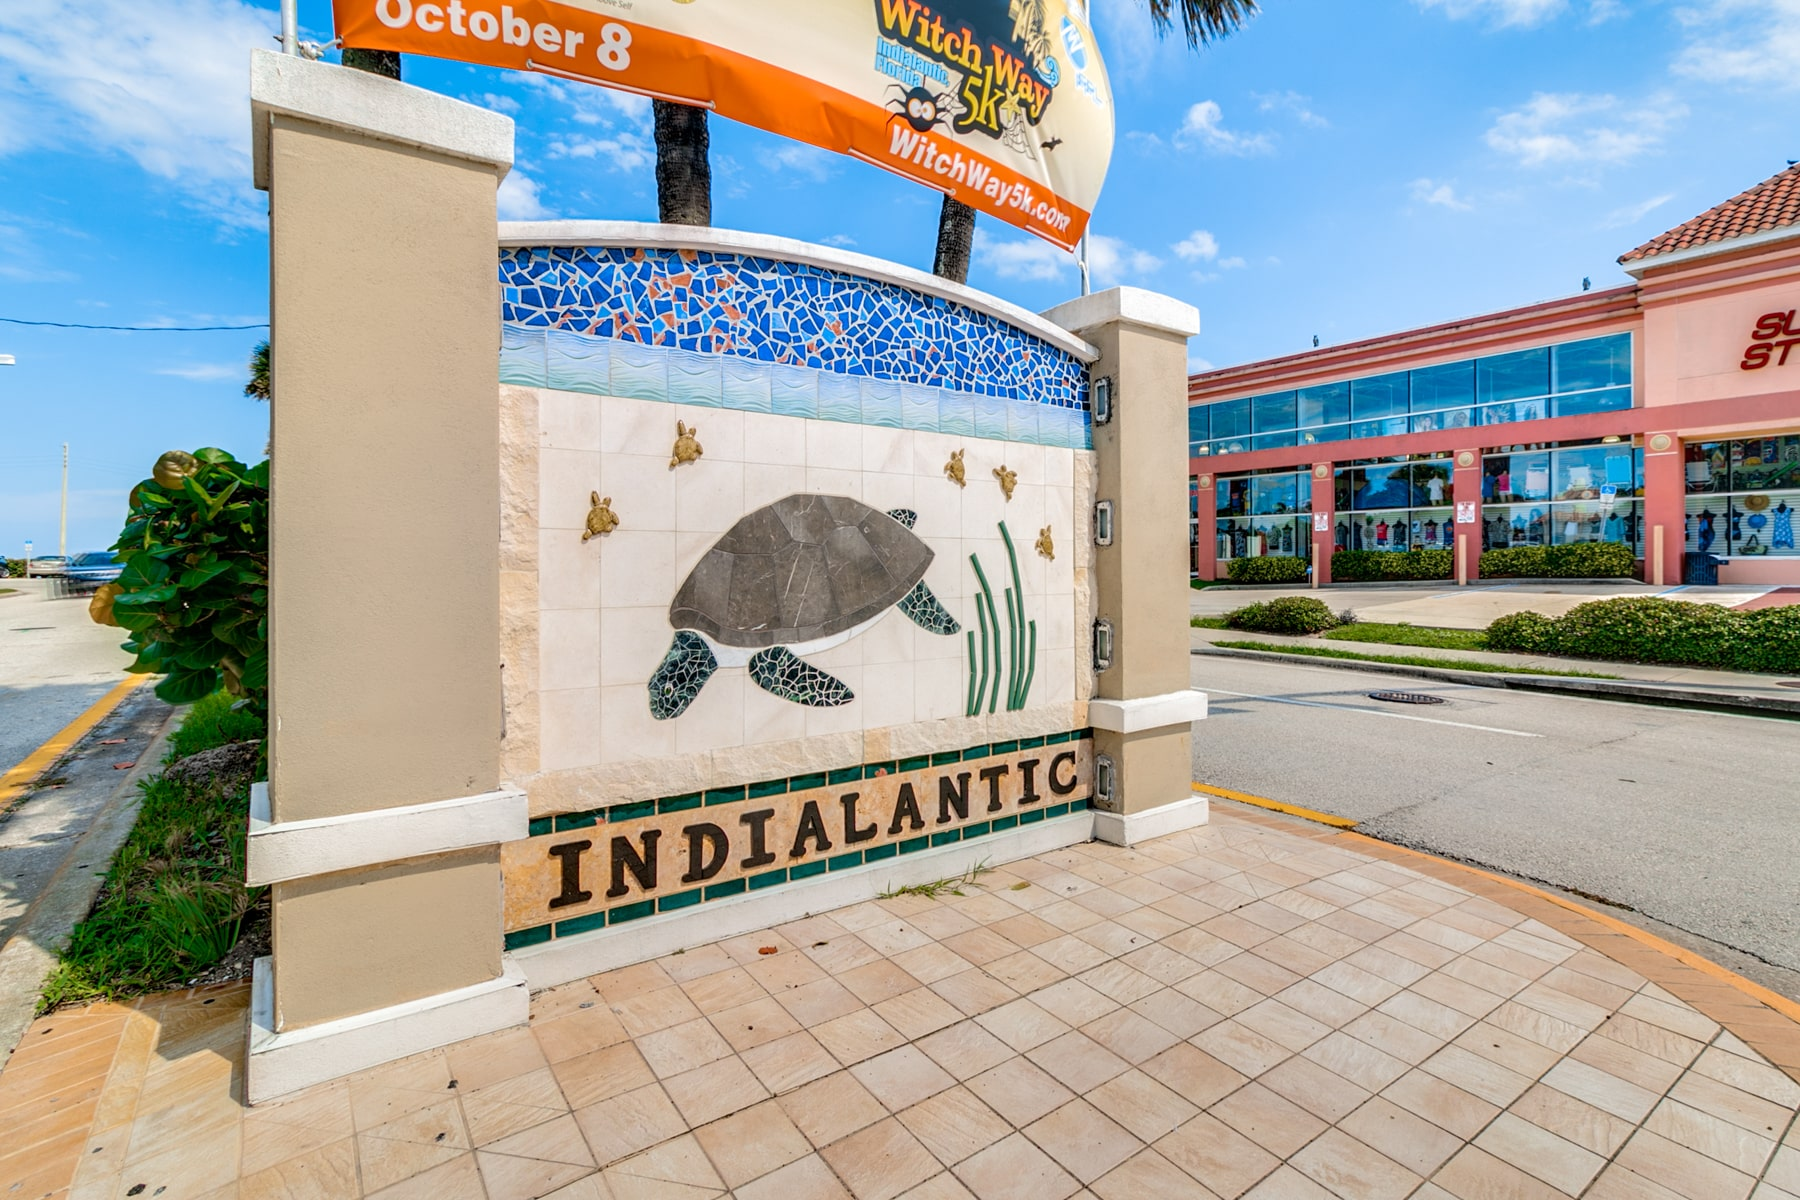 Indialantic fifth ave